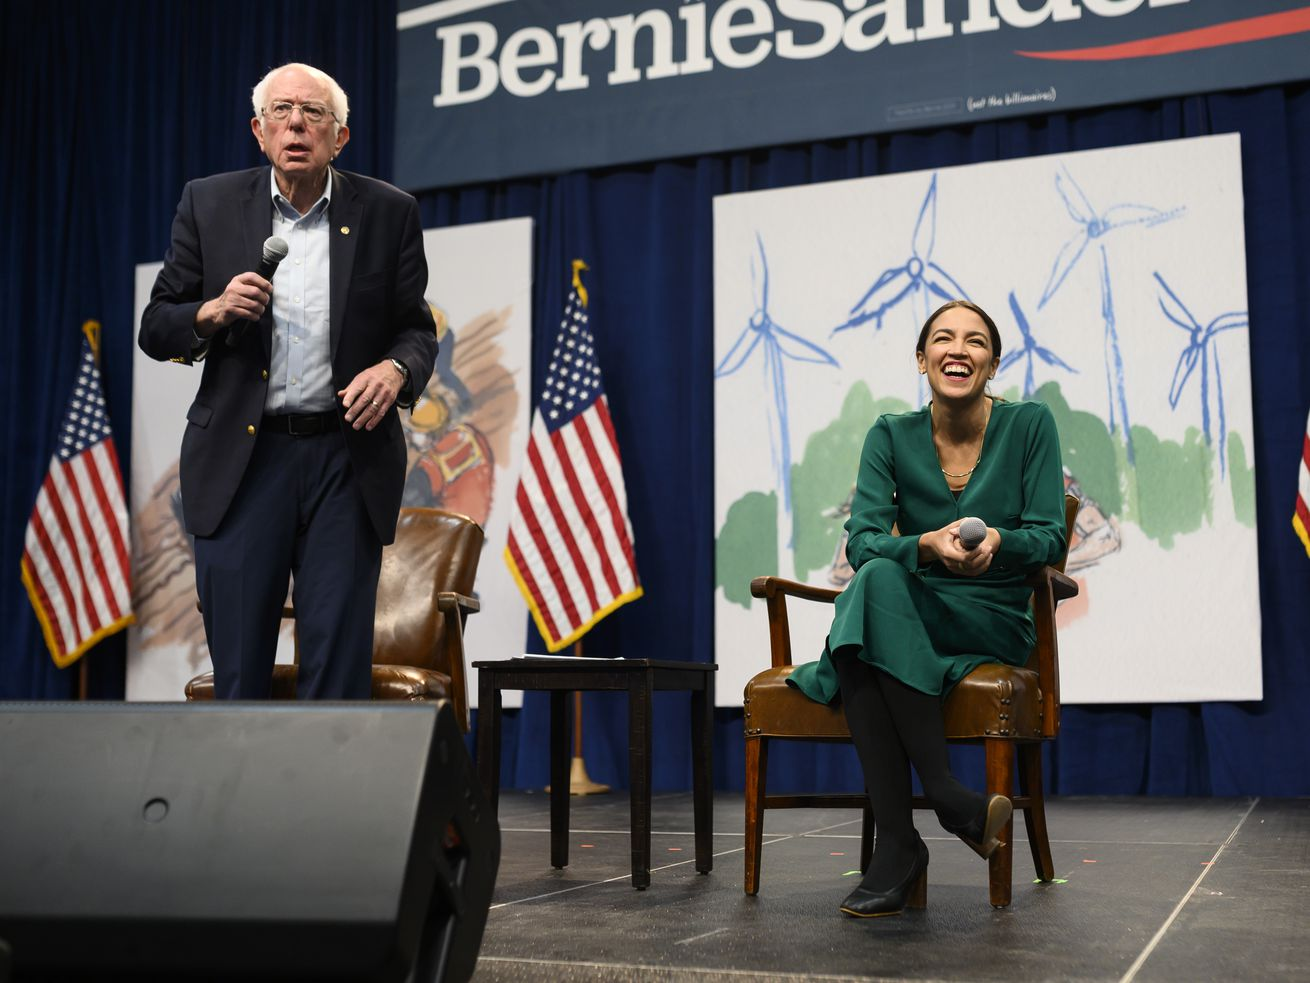 Democratic presidential candidate Sen. Bernie Sanders (I-VT) and US Rep. Alexandria Ocasio-Cortez (D-NY) field questions from audience members at the Climate Crisis Summit at Drake University on November 9, 2019, in Des Moines, Iowa.